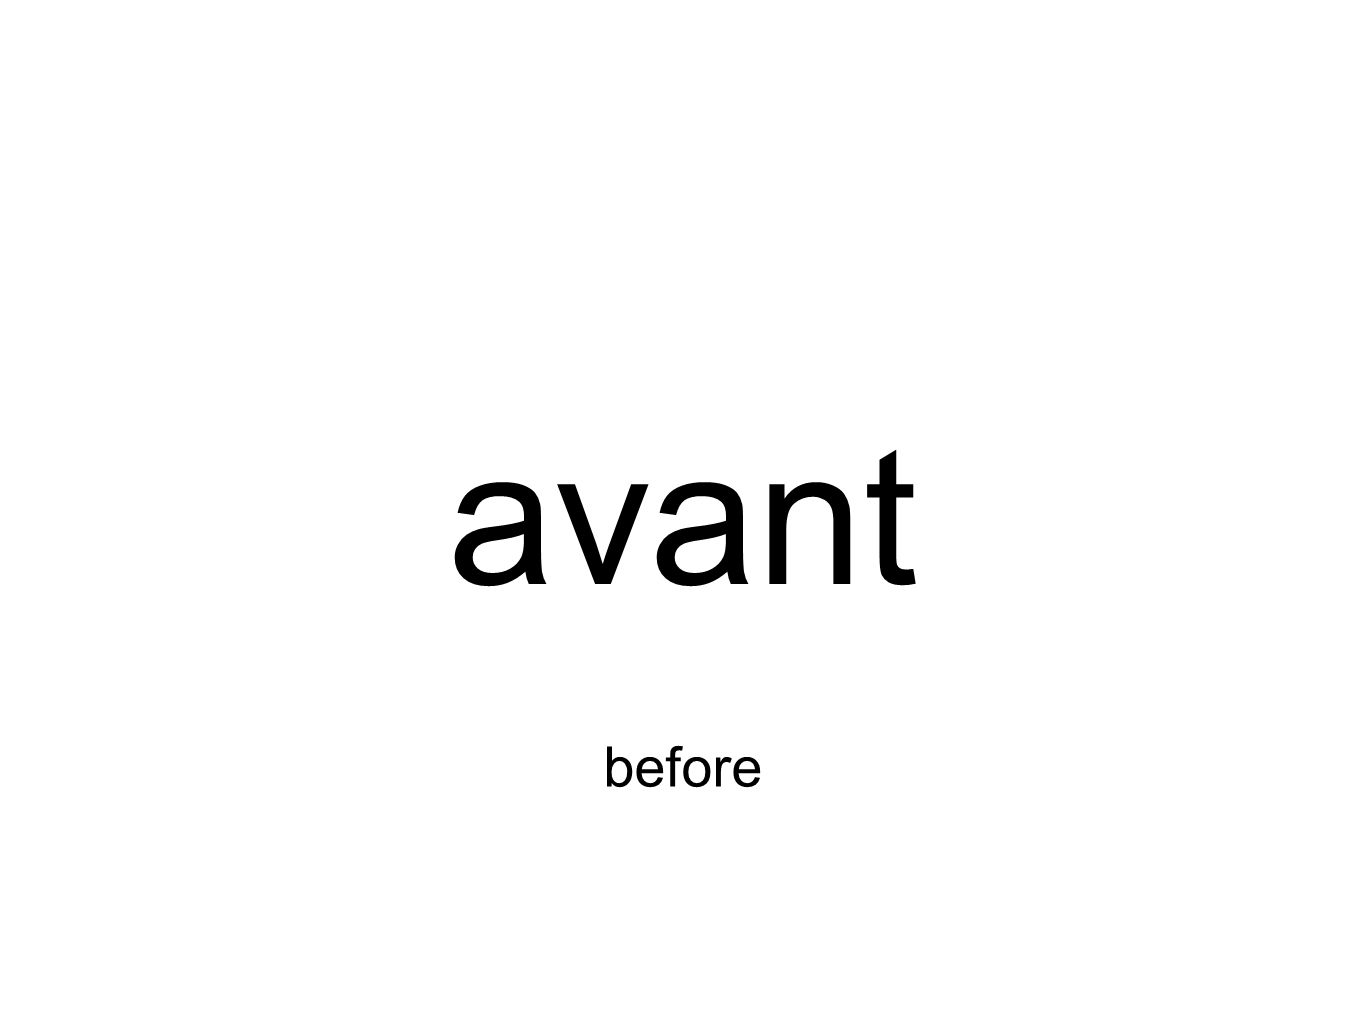 avoir VERB: to have